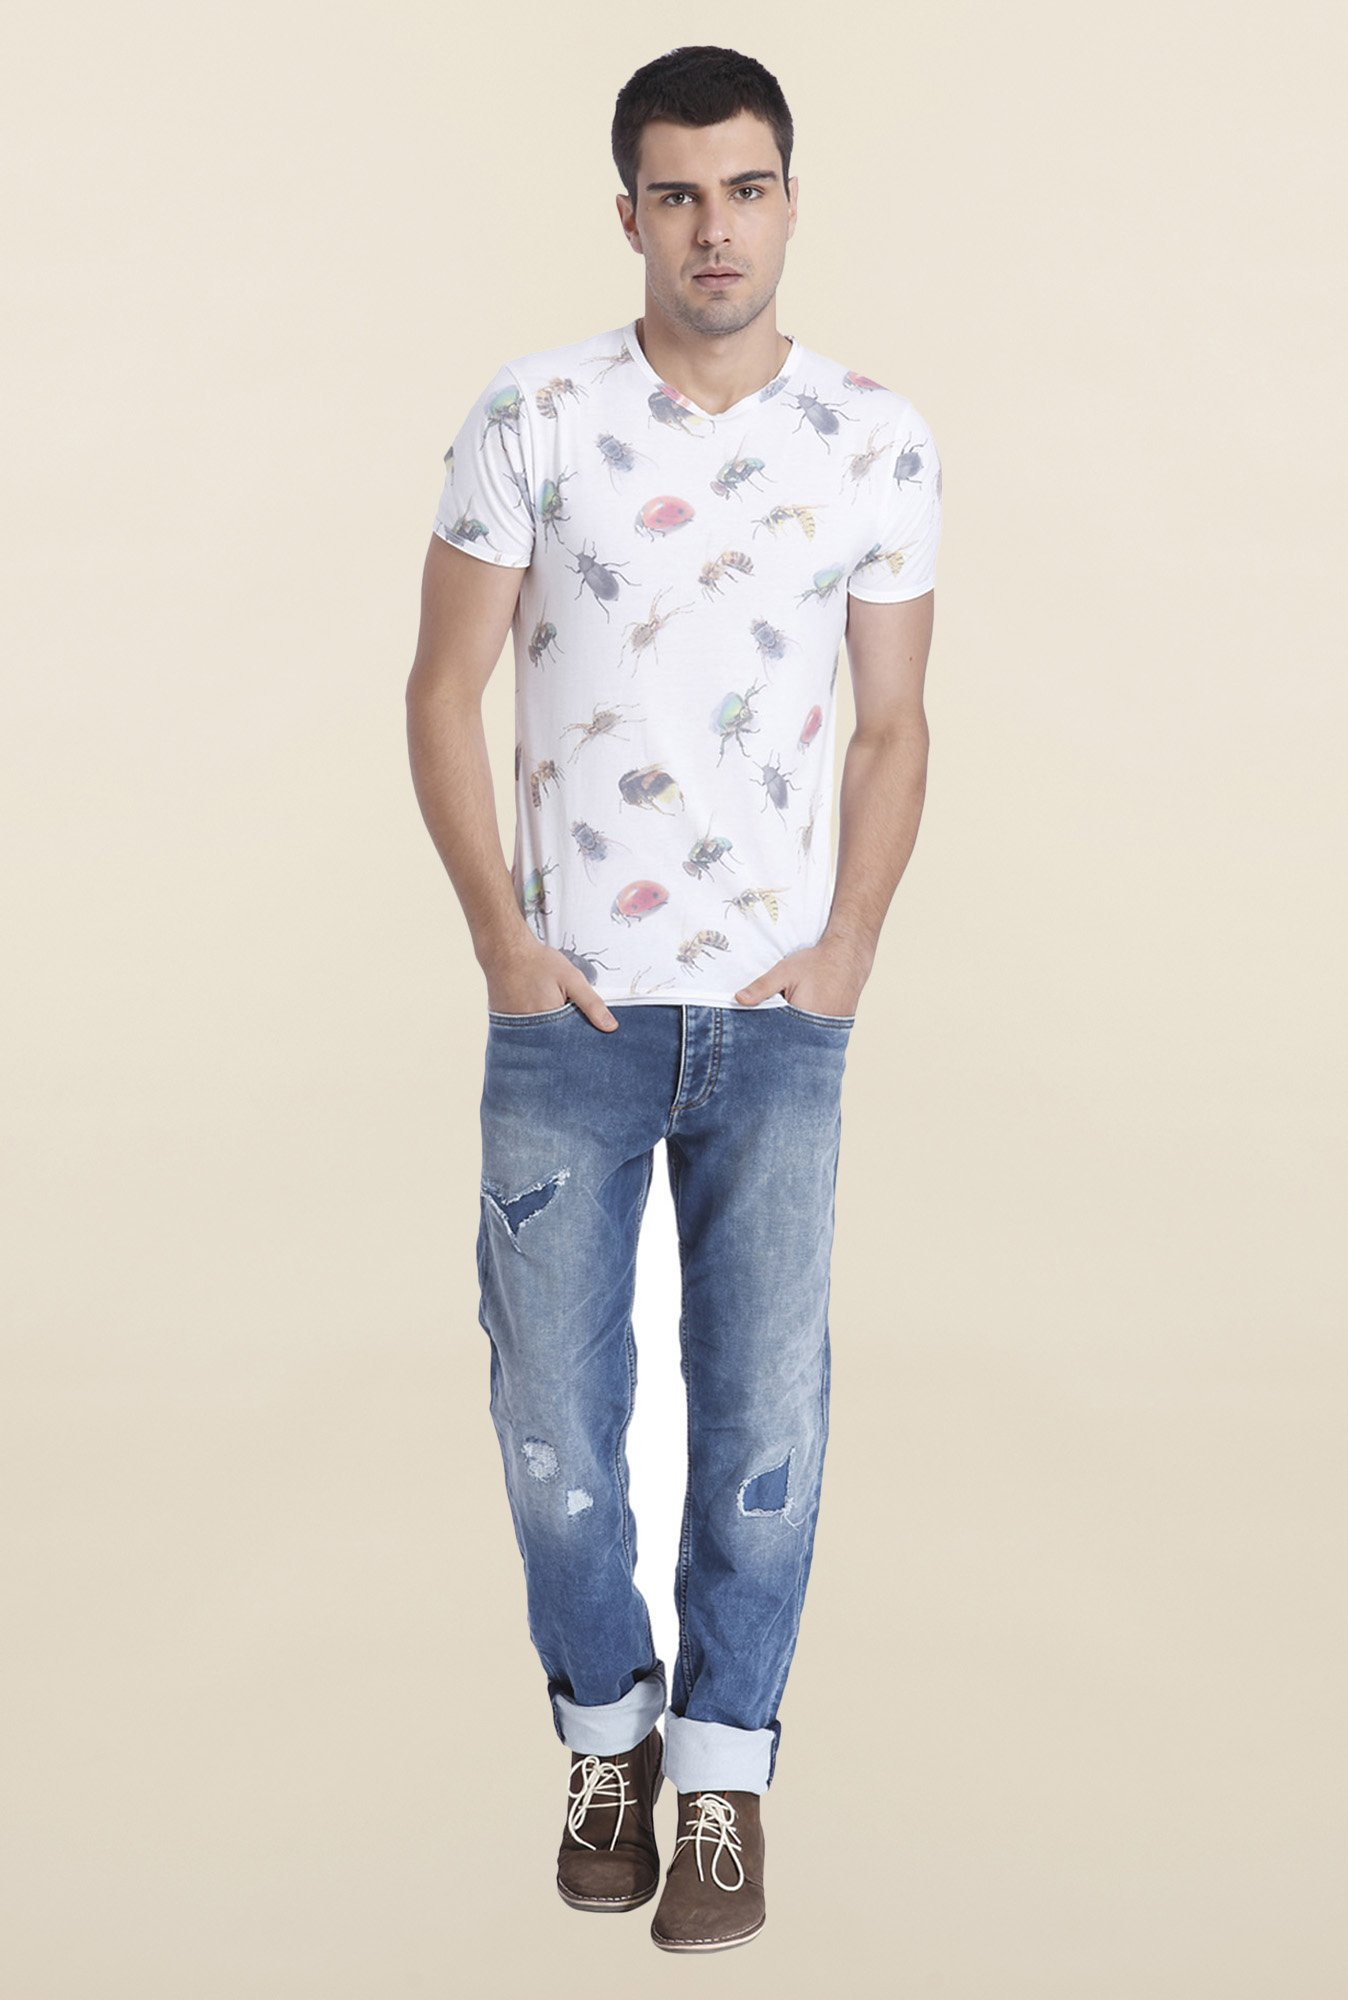 Jack & Jones White Printed Slim Fit T Shirt